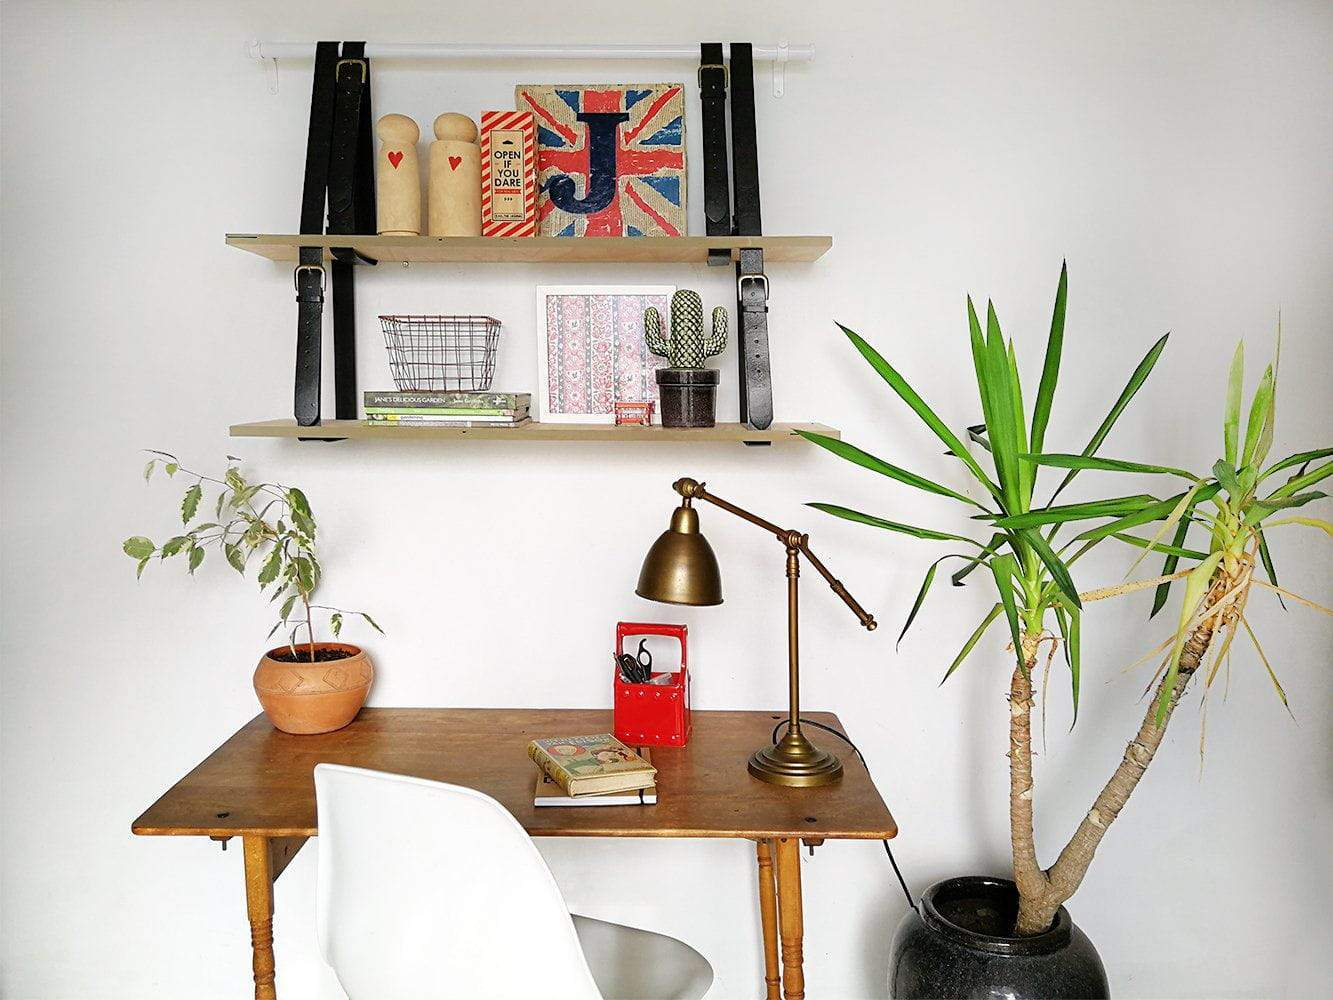 How to DIY Quick and Easy Hanging Shelving in 5 easy steps